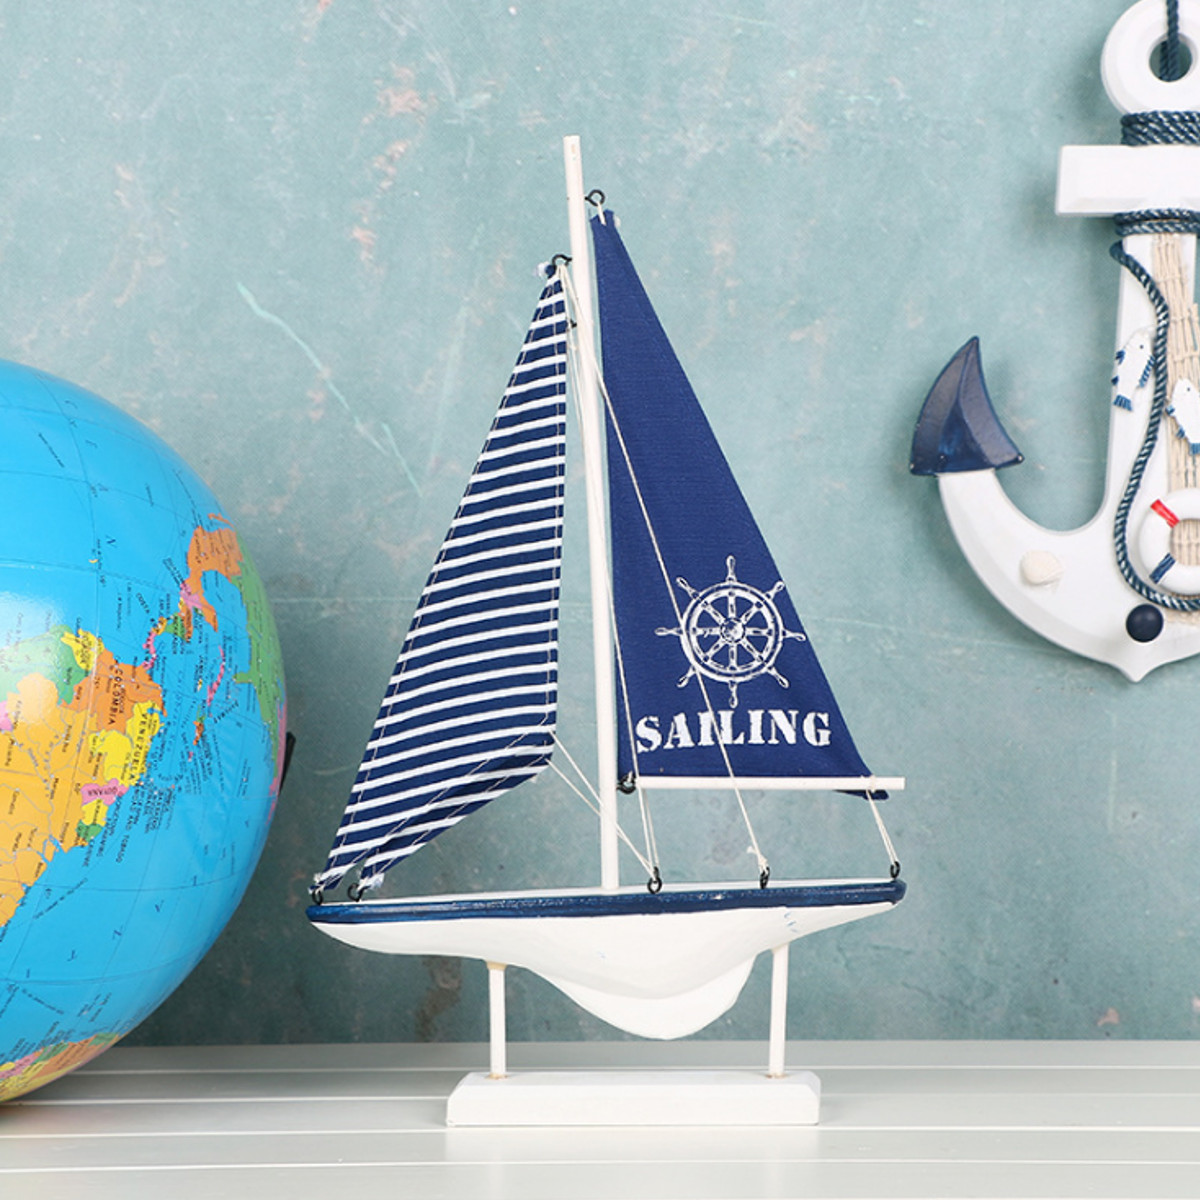 Ship-Assembly-Model-DIY-Kit-Wooden-Sailing-Boat-Decor-Wood-Toy-Gift-Collectables thumbnail 7